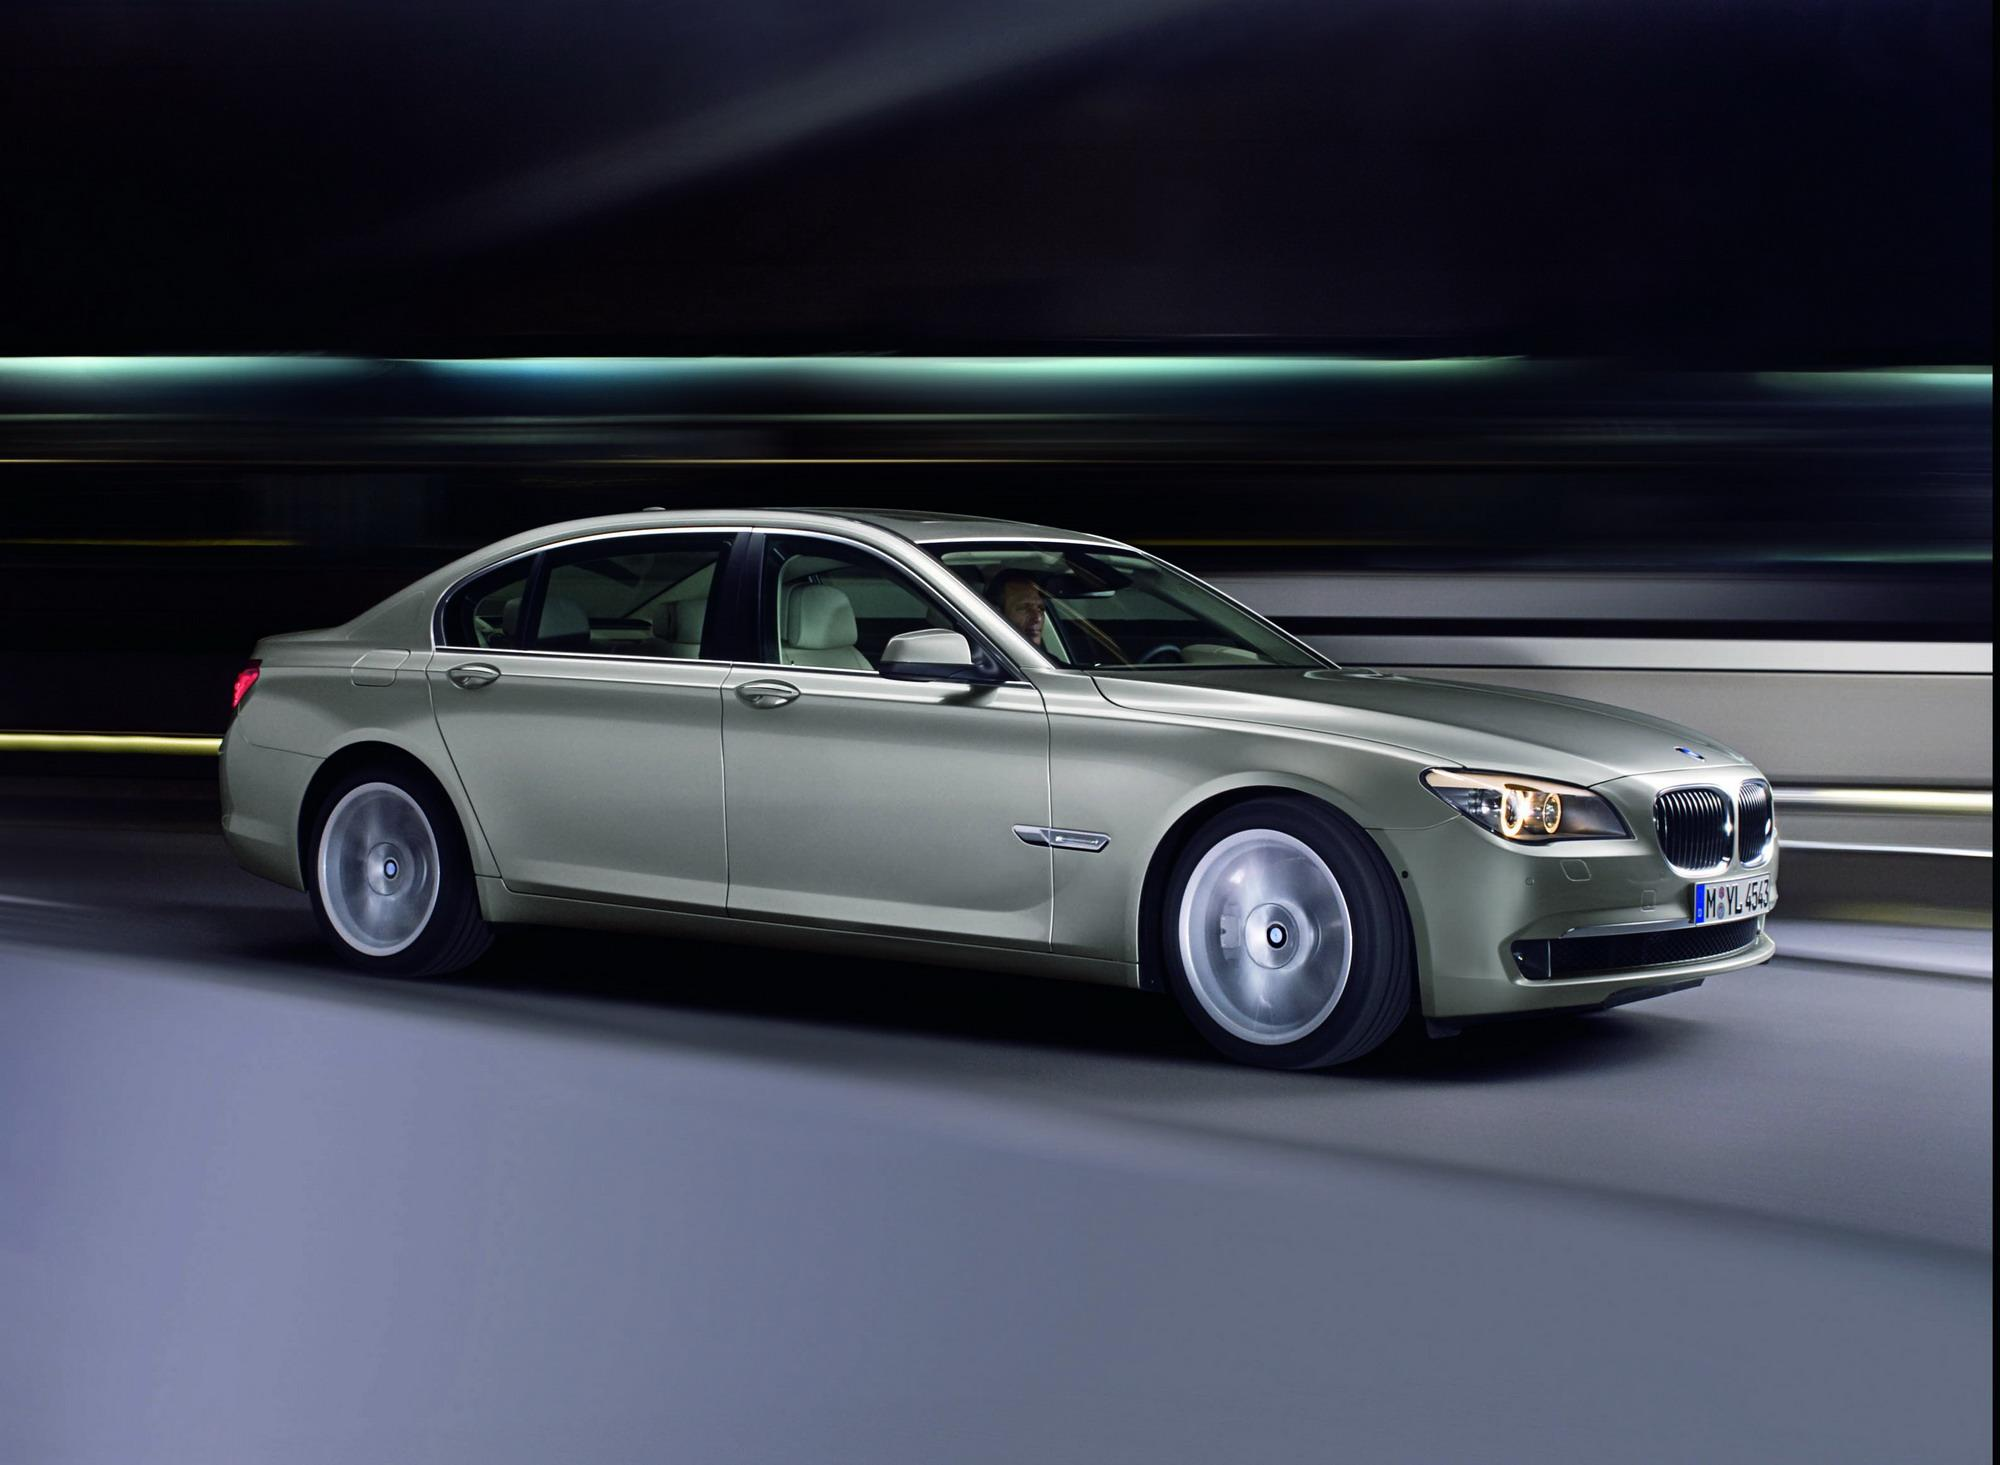 2009 BMW 7-Series Review - Top Speed